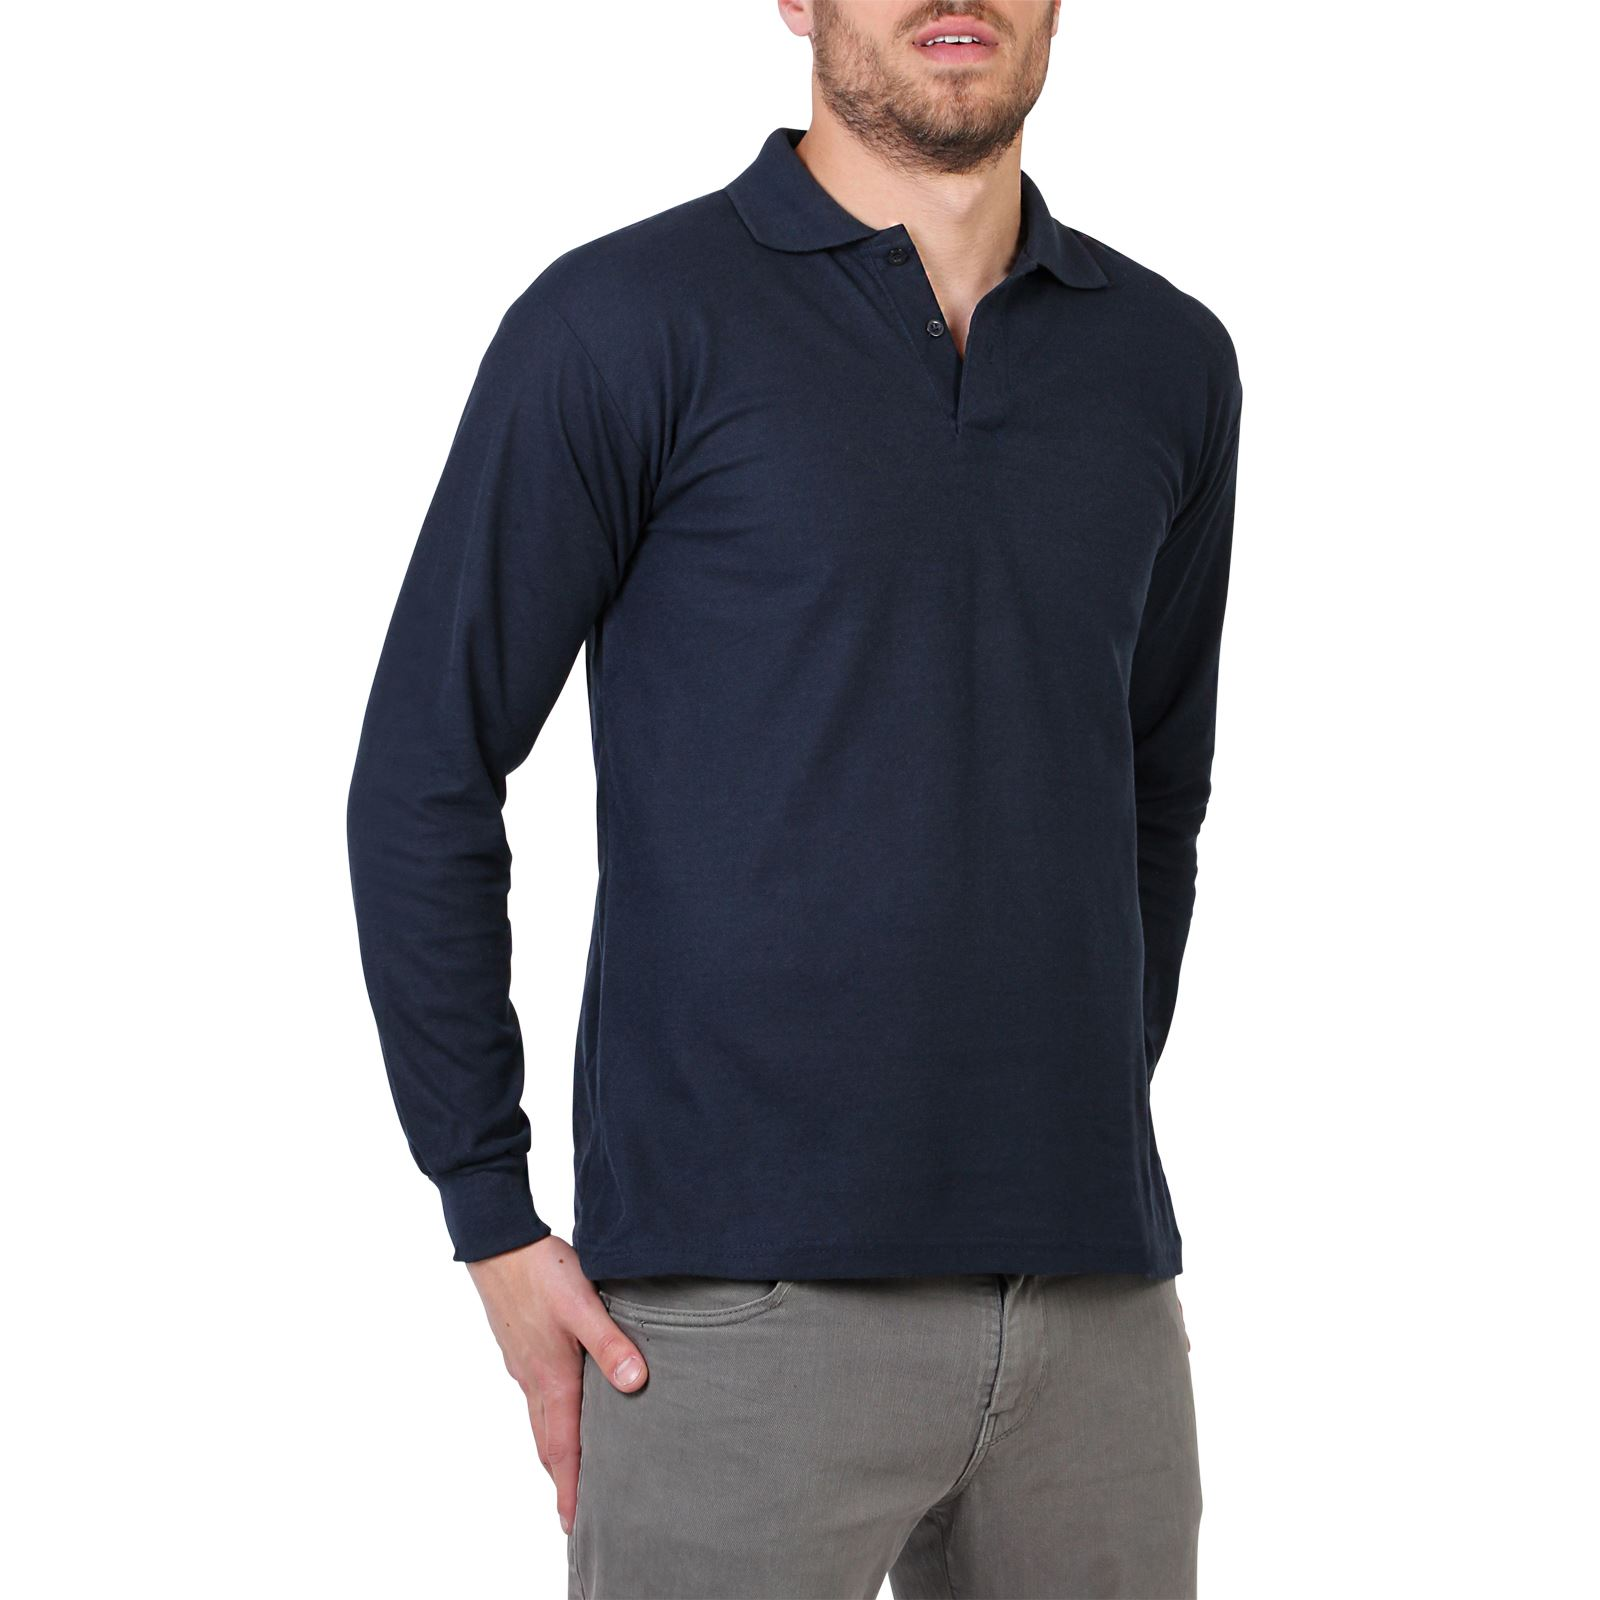 mens casual long sleeve polo t shirt top plain regular fashion summer tee s xxl ebay. Black Bedroom Furniture Sets. Home Design Ideas